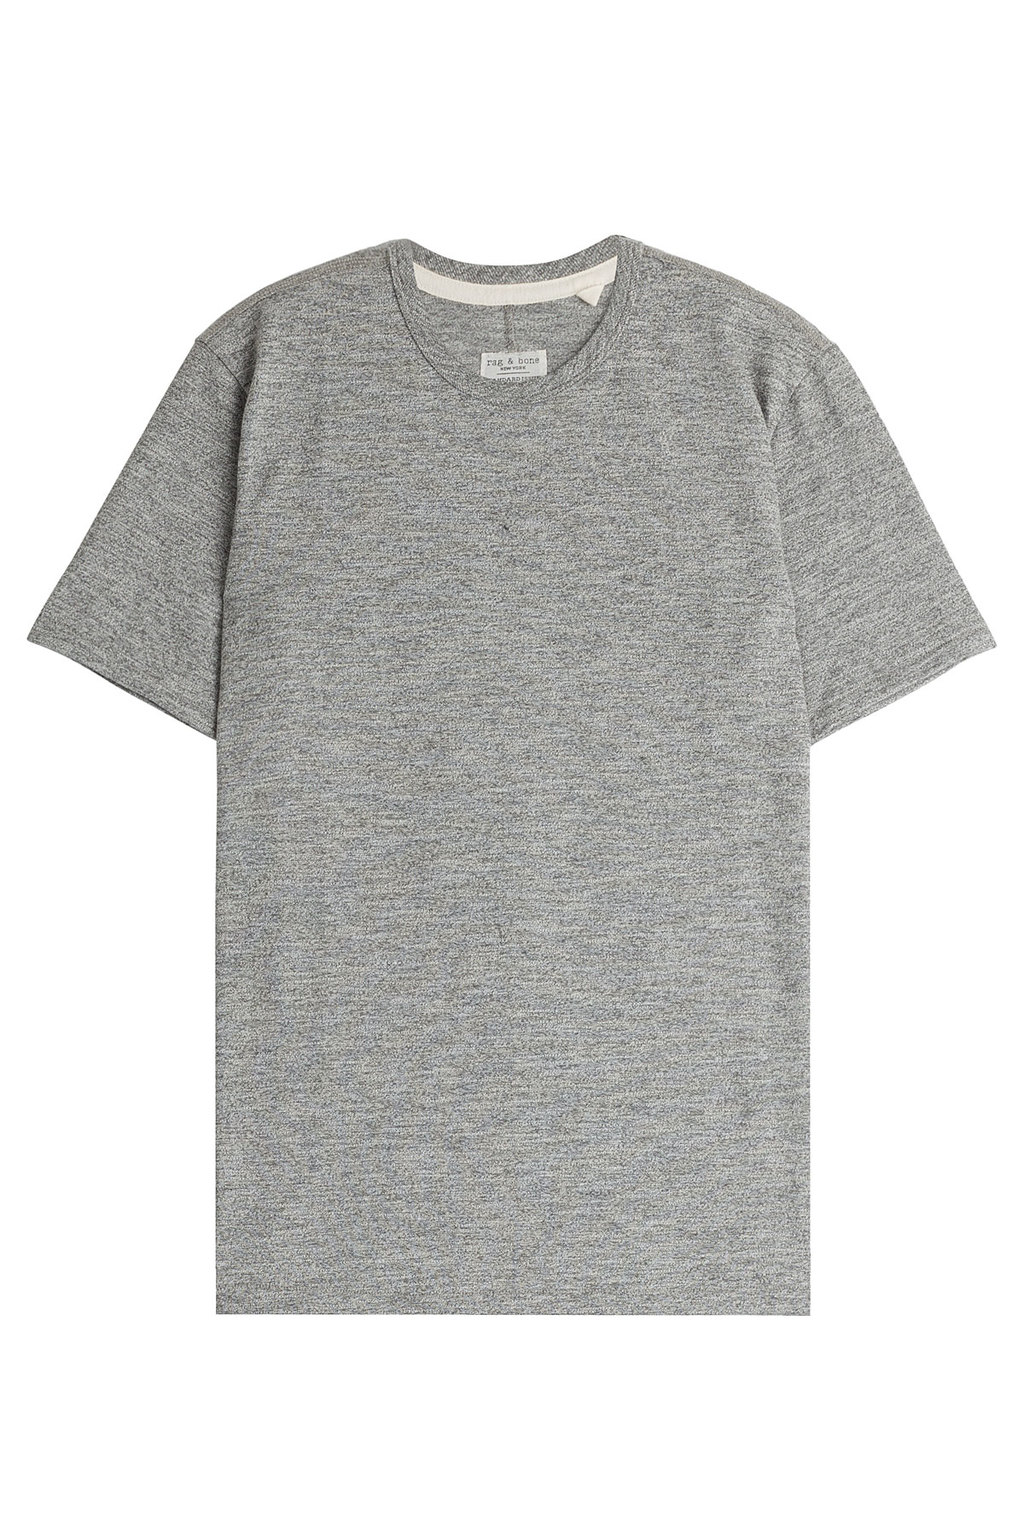 Cotton Blend T Shirt - pattern: plain; style: t-shirt; predominant colour: mid grey; occasions: casual; length: standard; fibres: cotton - mix; fit: straight cut; neckline: crew; sleeve length: short sleeve; sleeve style: standard; pattern type: fabric; texture group: jersey - stretchy/drapey; season: s/s 2016; wardrobe: basic